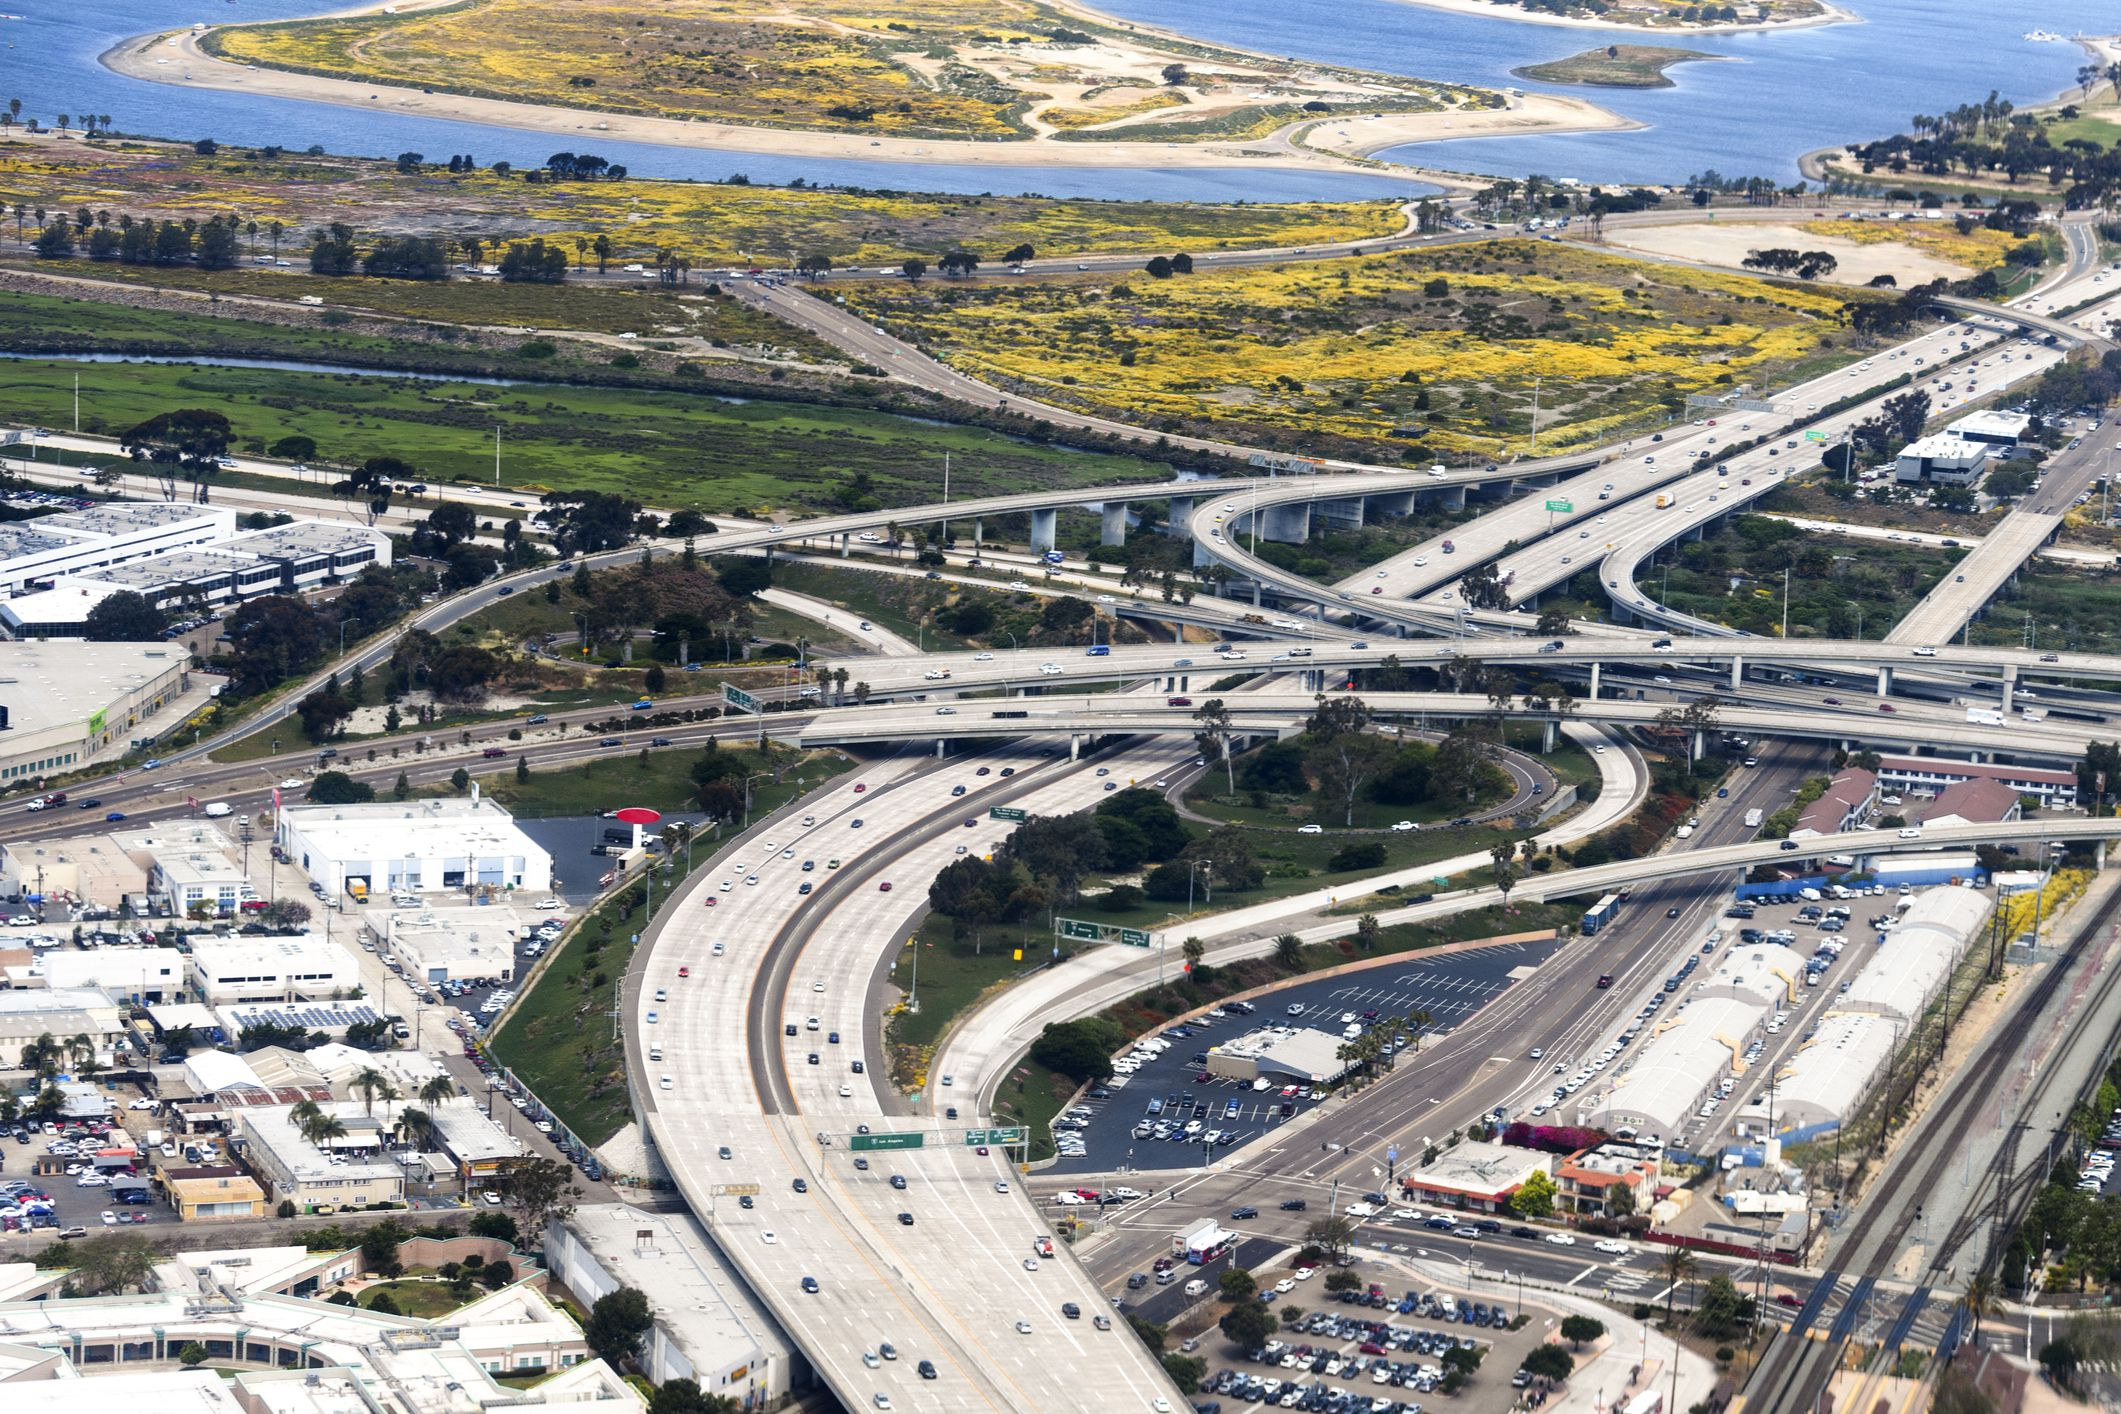 What You Need to Know About San Diego's Freeways